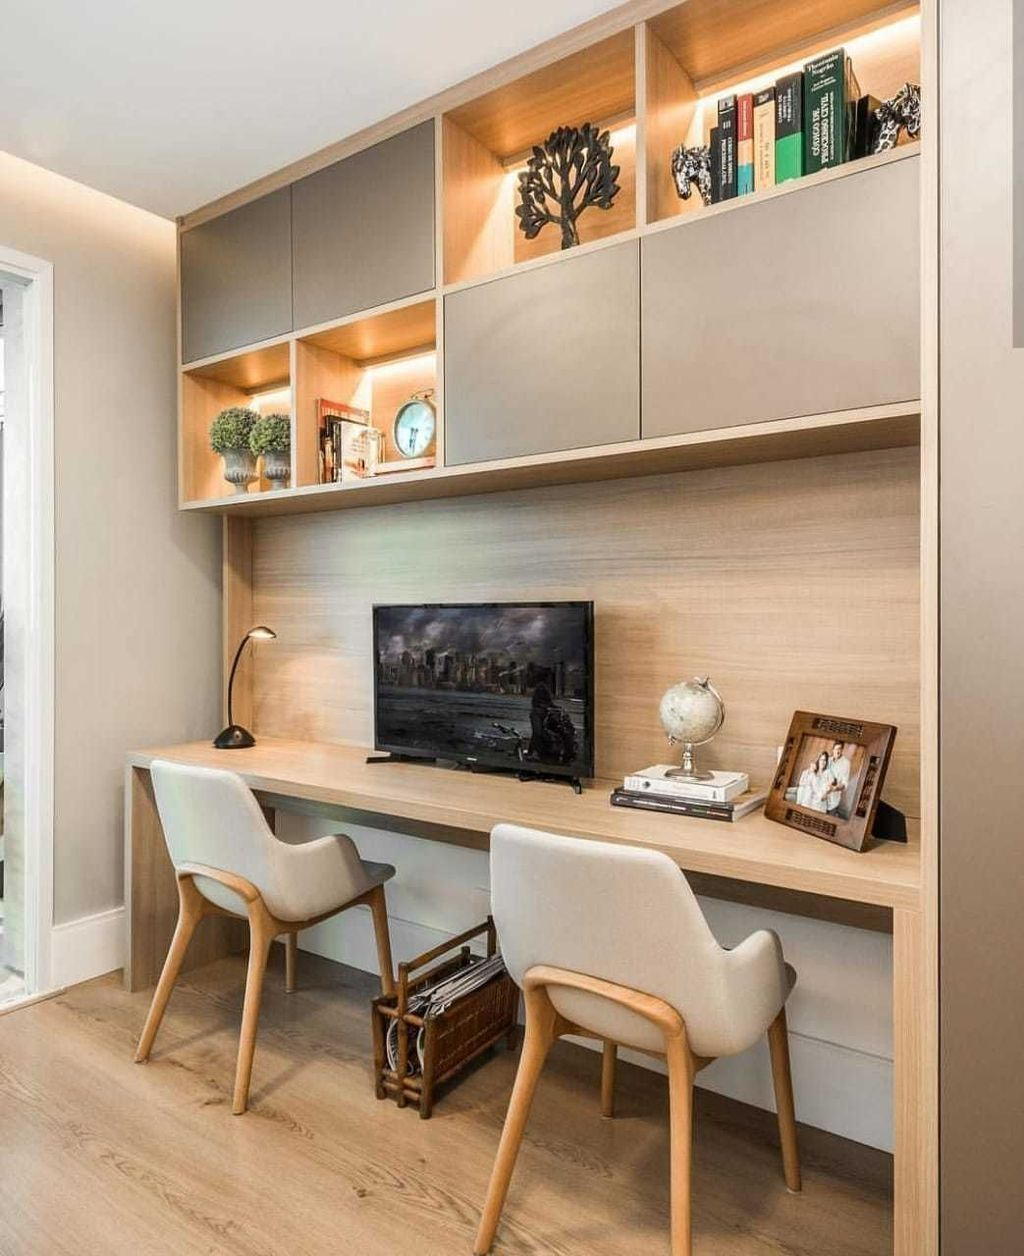 38 Stunning Small Home Office Furniture Design Ideas Awesome 38 Stunning Small Home Office Furniture Design Ideas